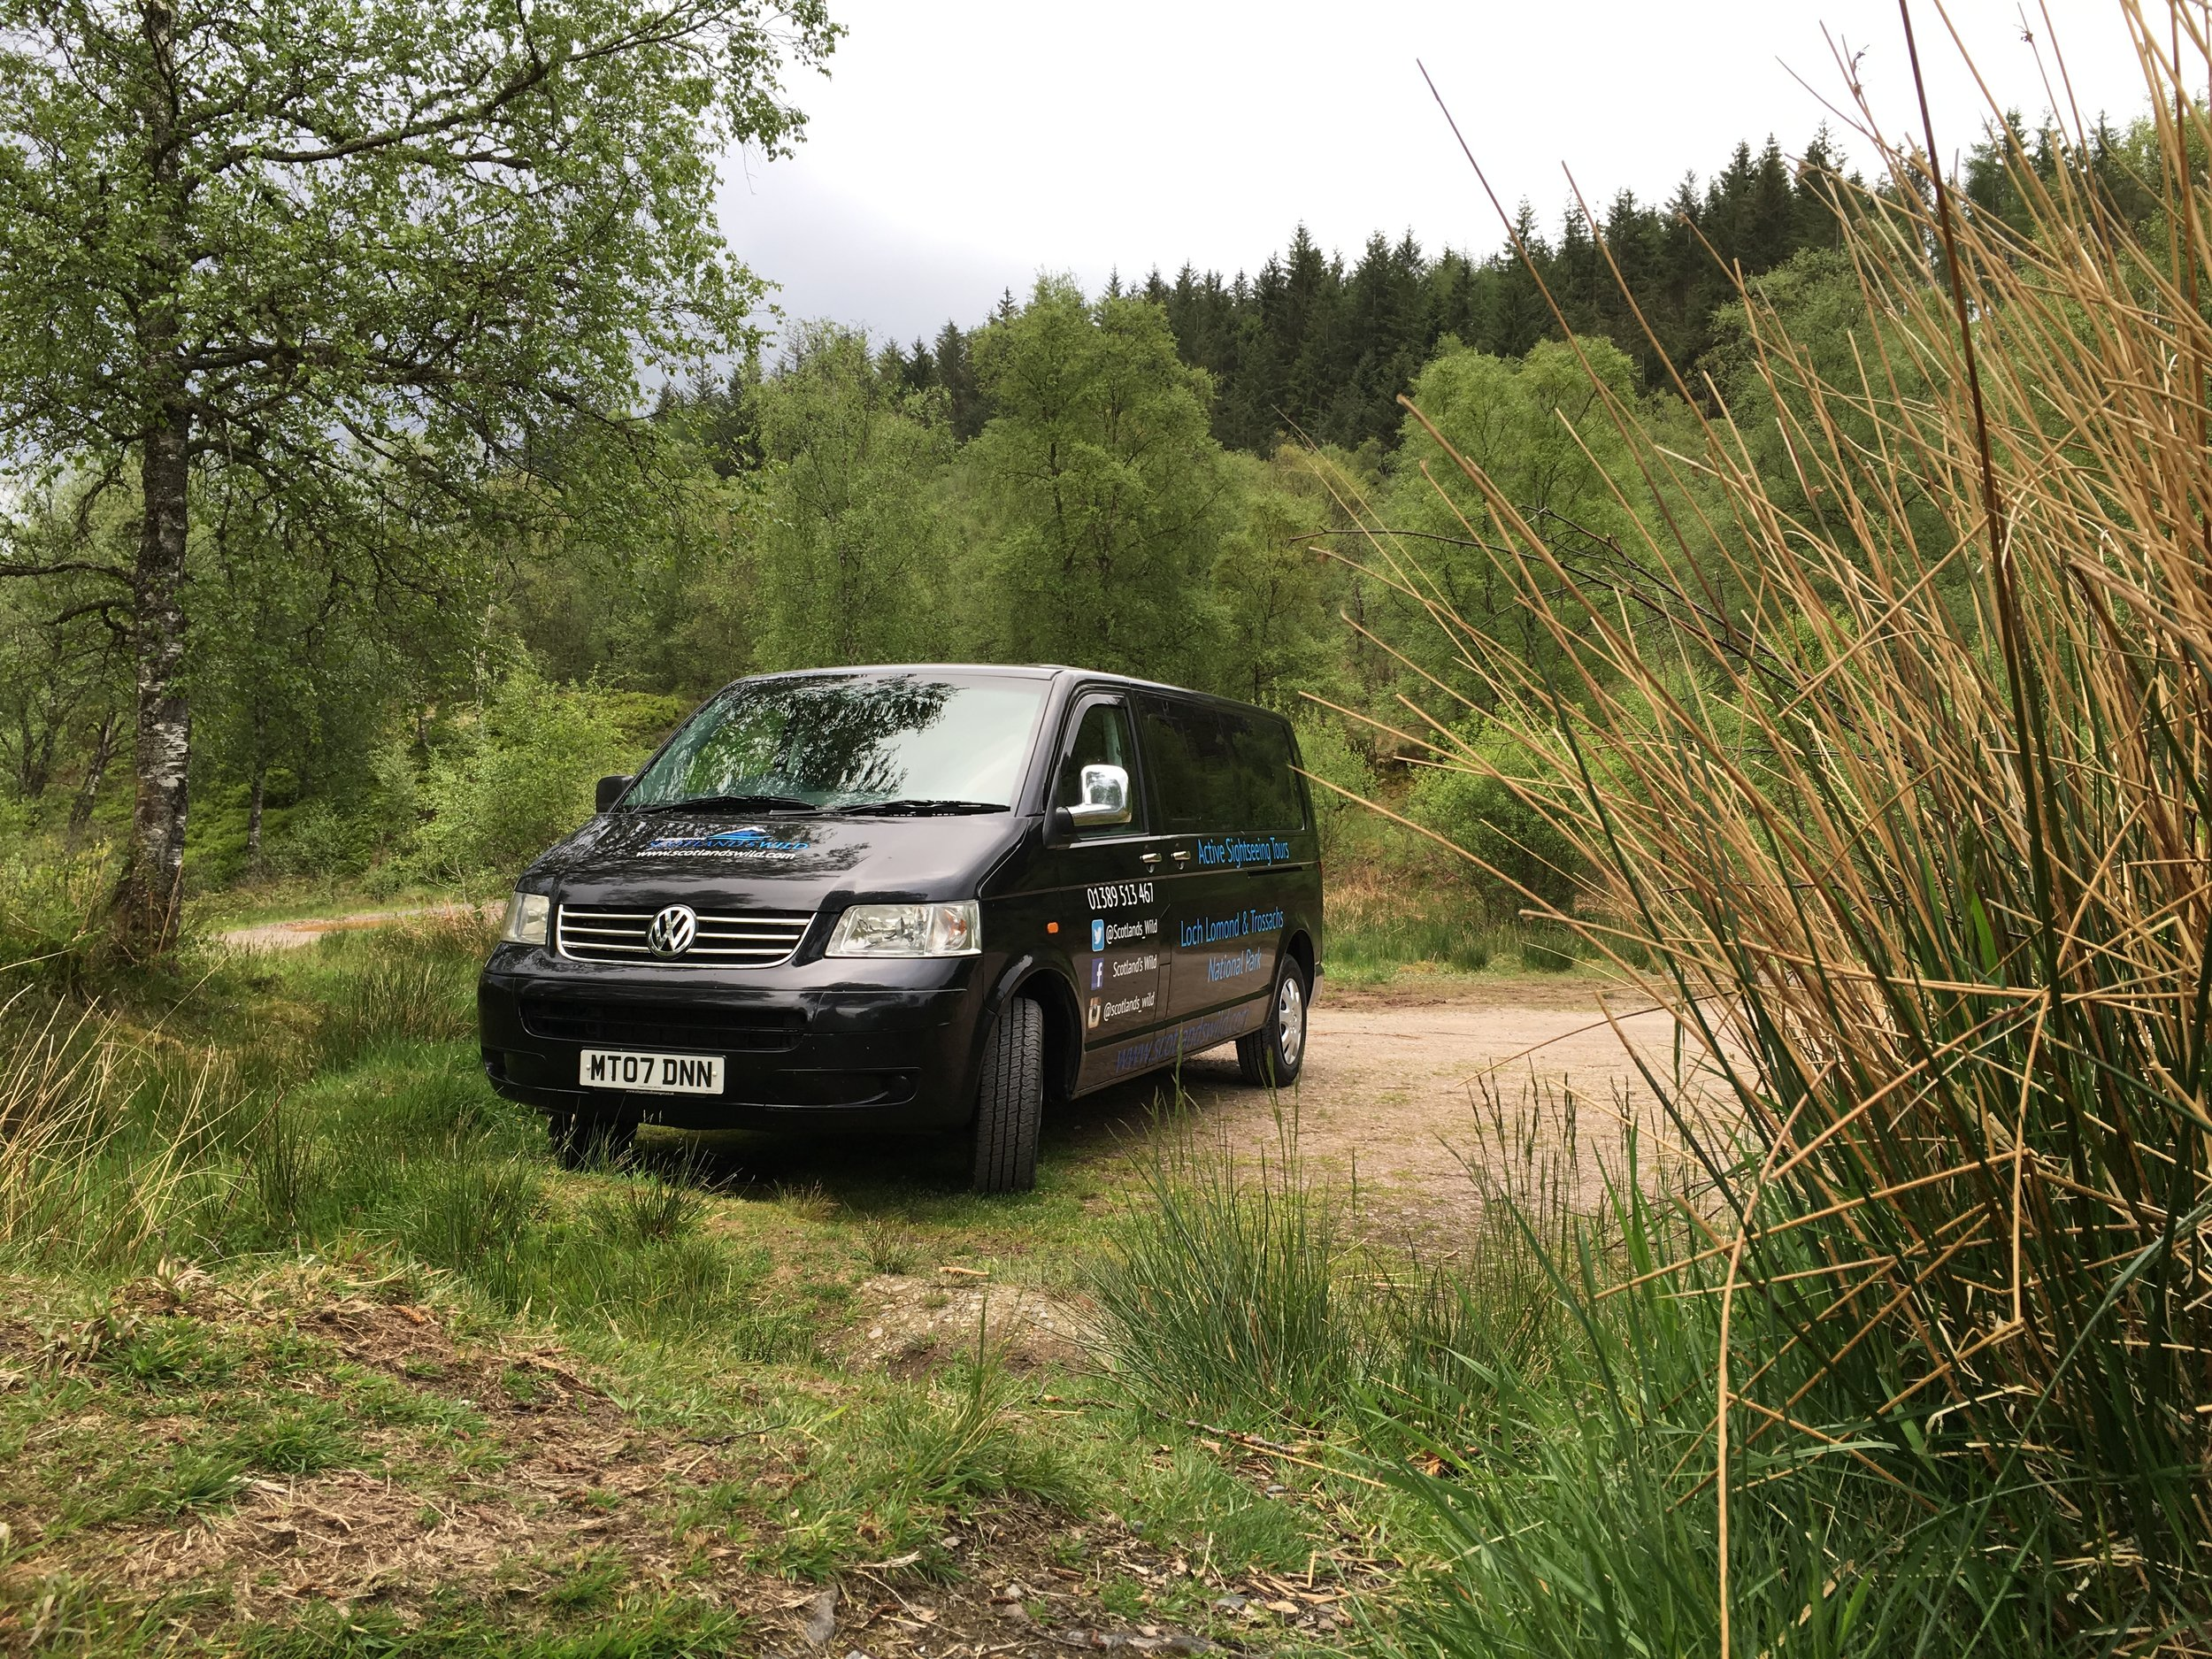 Small group Tours in remote Scottish locations